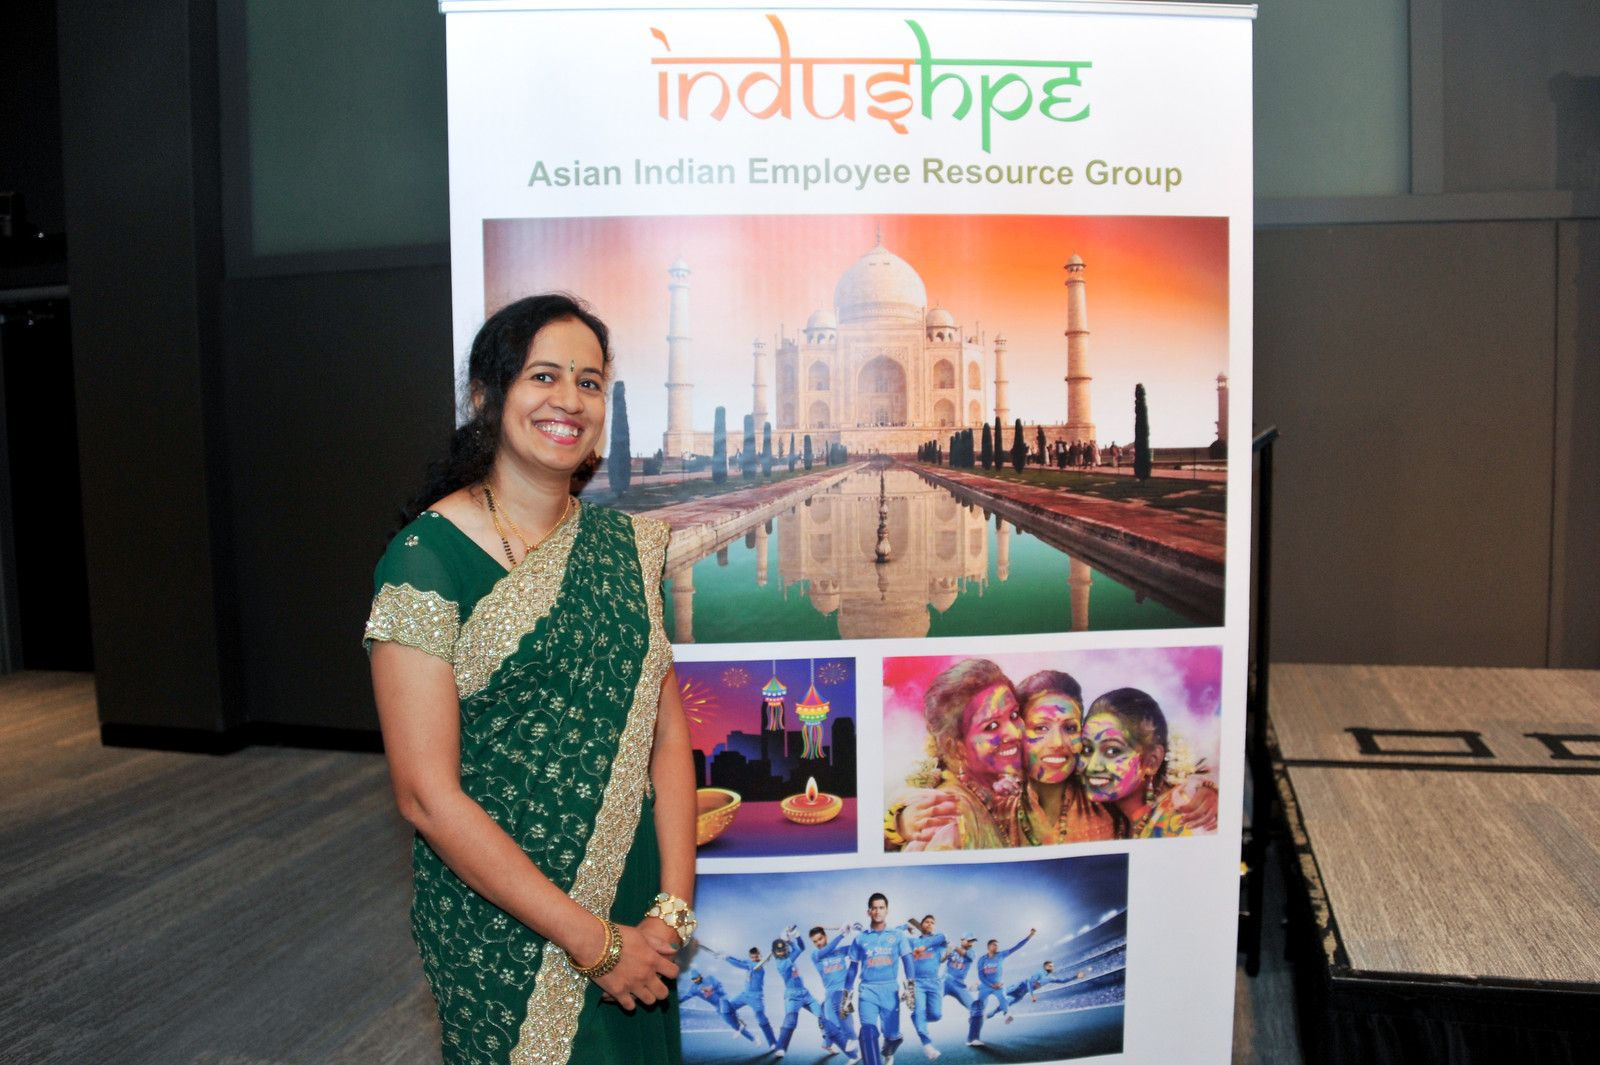 Diwaliasianindianemployeeresourcegroup.jpg